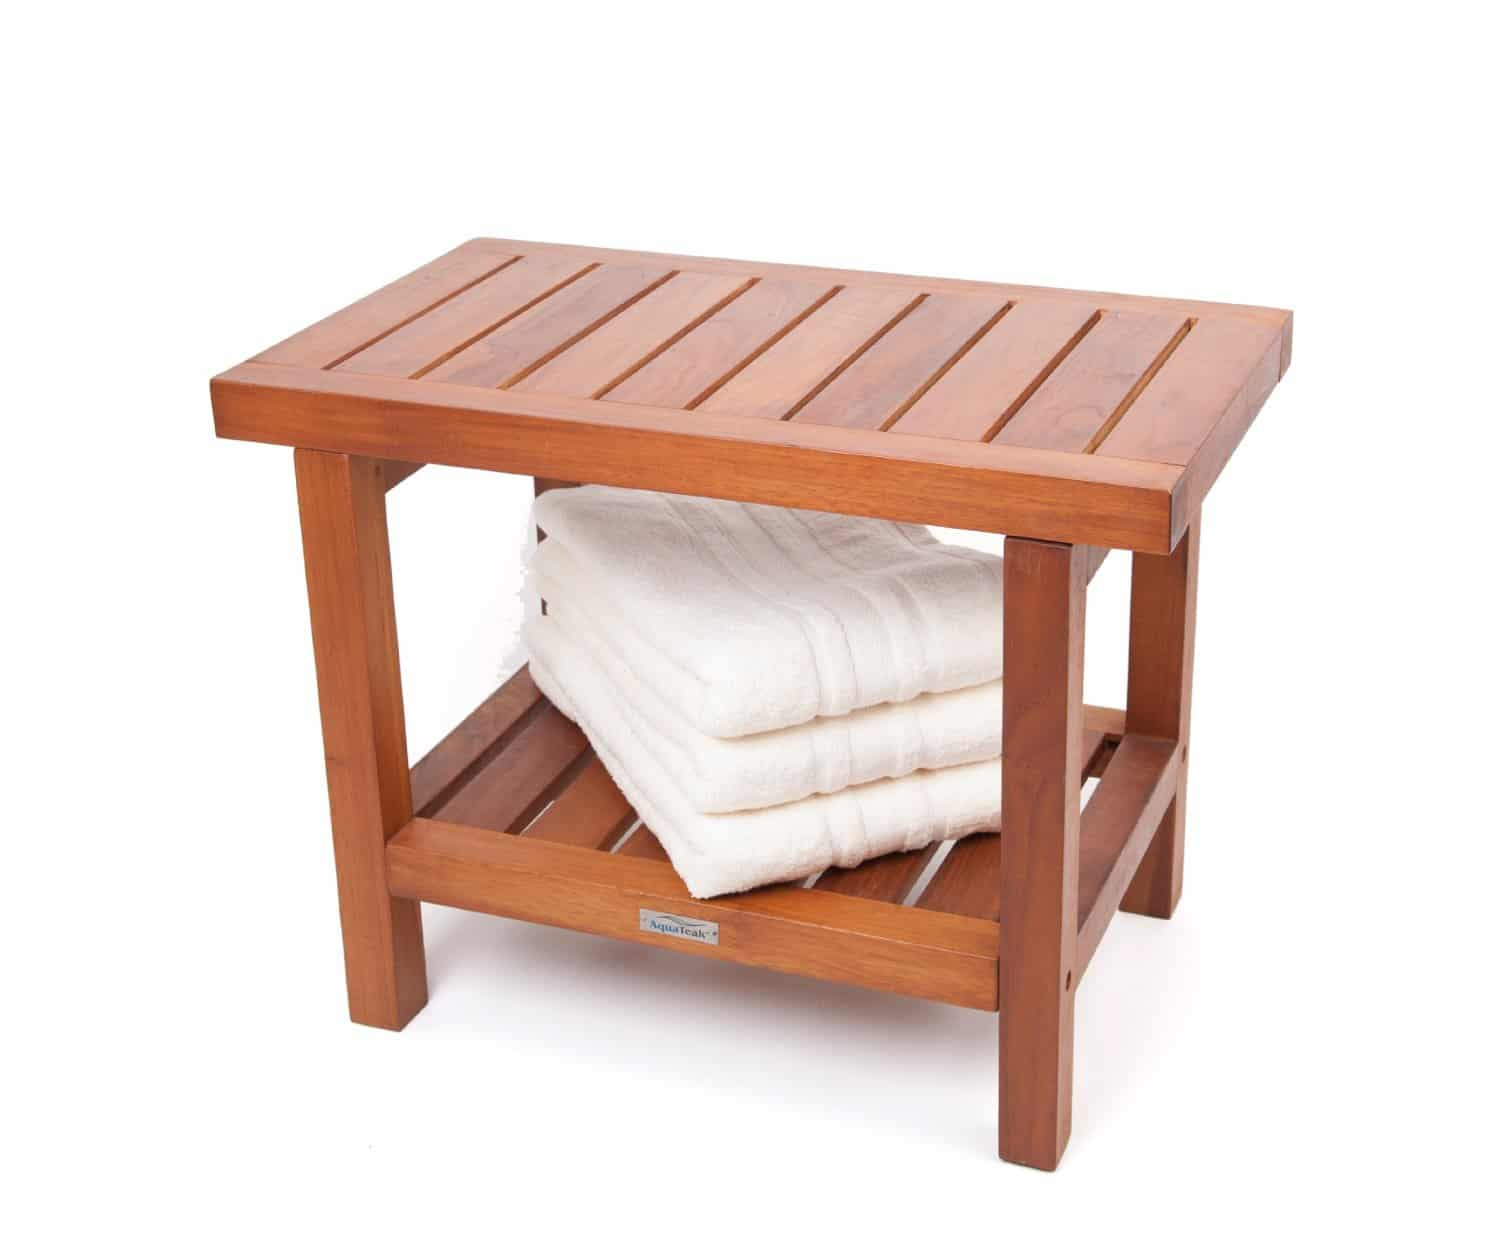 the benefits of owning a teak shower bench - teak patio furniture